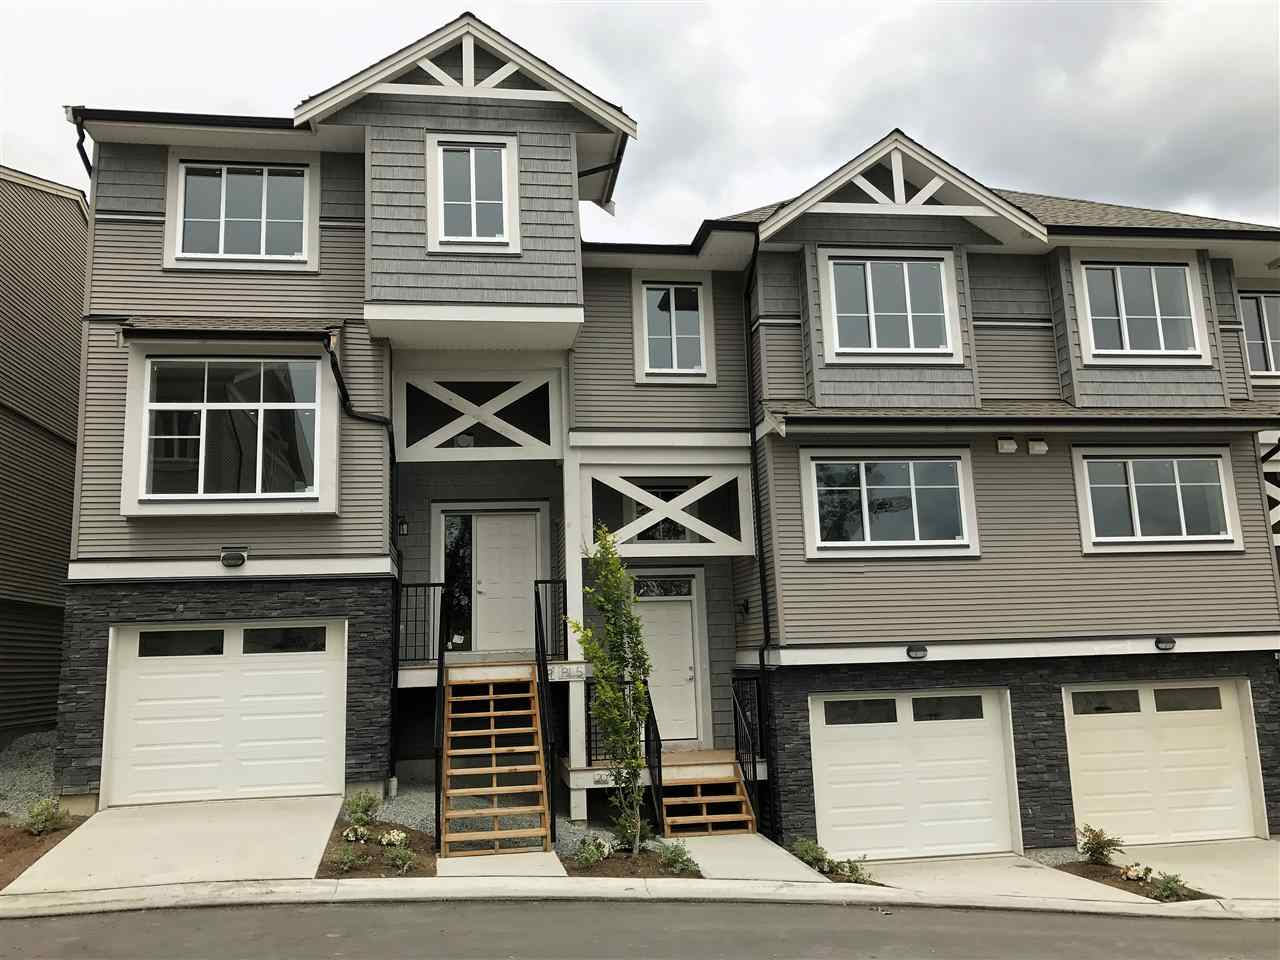 """""""Cottonwood Ridge"""" Deluxe townhomes. Features 3 bedrooms, 3 bathrooms, Maple Kitchen with granite counters, B/I microwave over the range, stainless steel appliances & washer + dryer, gas fireplace, gas furnace, fire protection, sprinkler system, double tandem garage, ensuite, finished basement & 10 year warranty."""